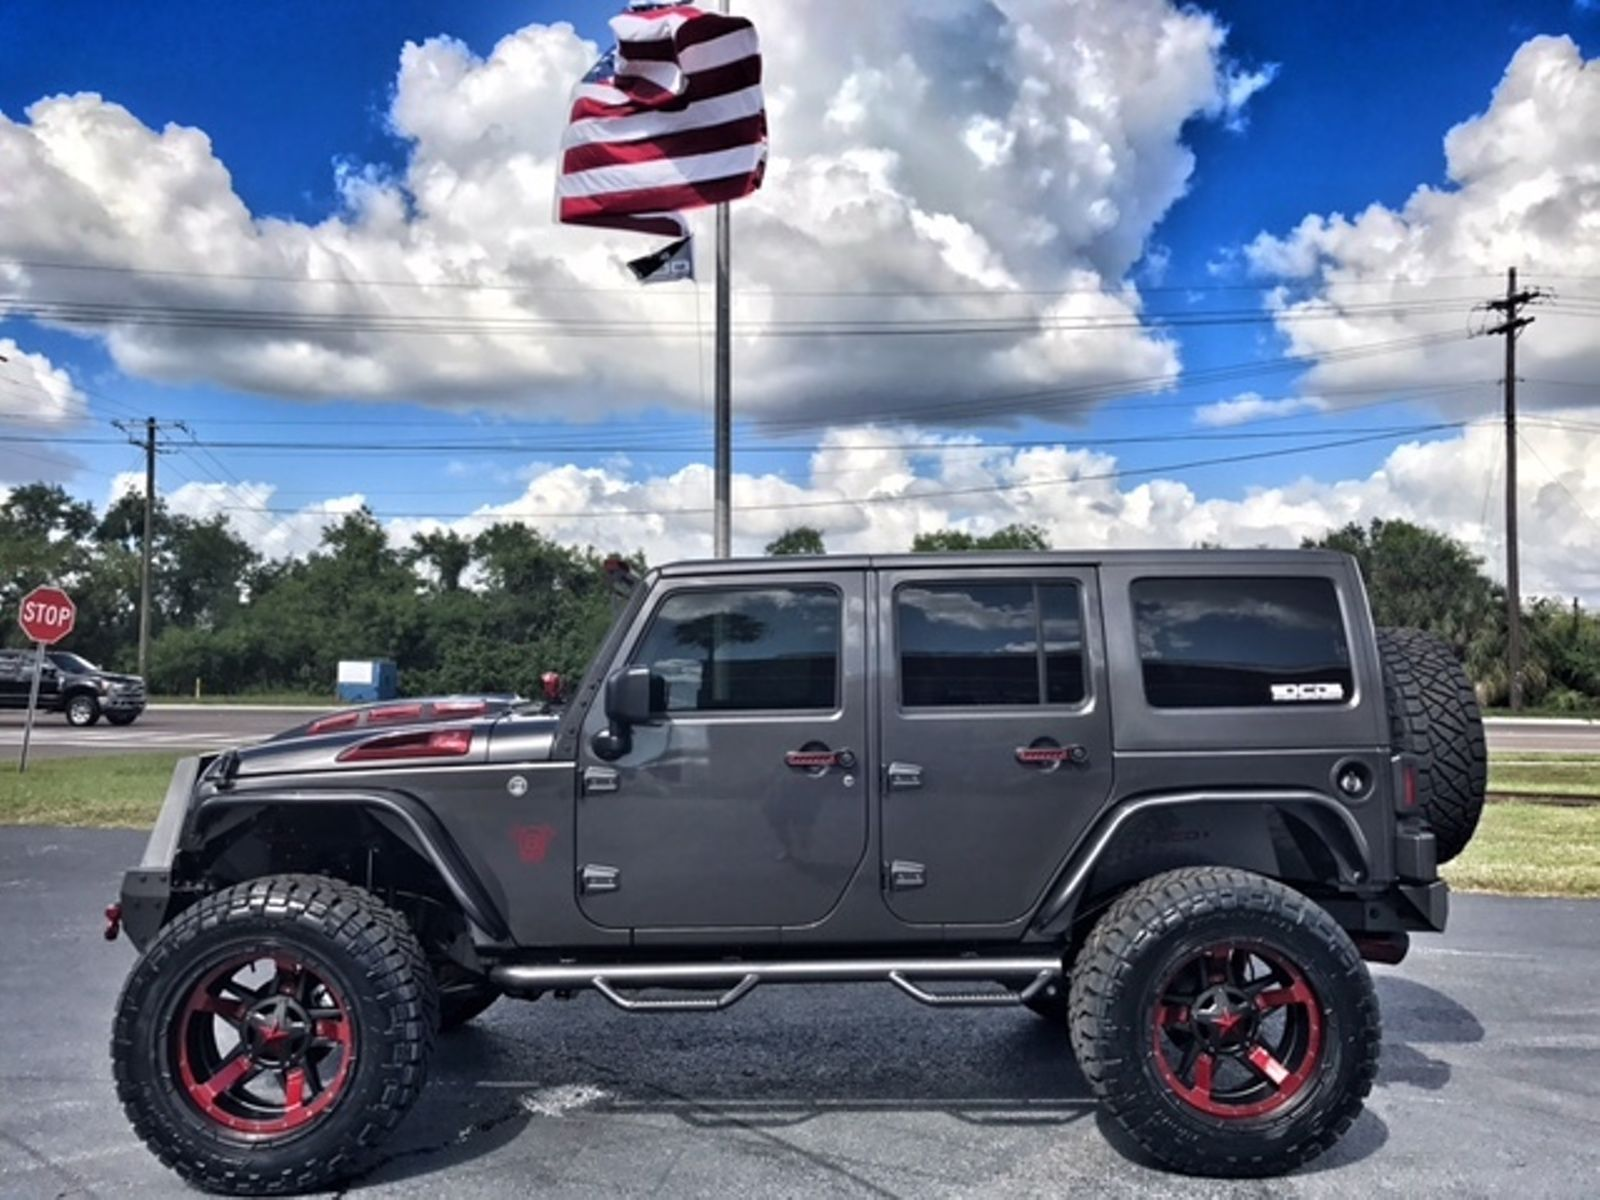 2017 Jeep Wrangler Unlimited Granite Fire Red Custom Build Florida